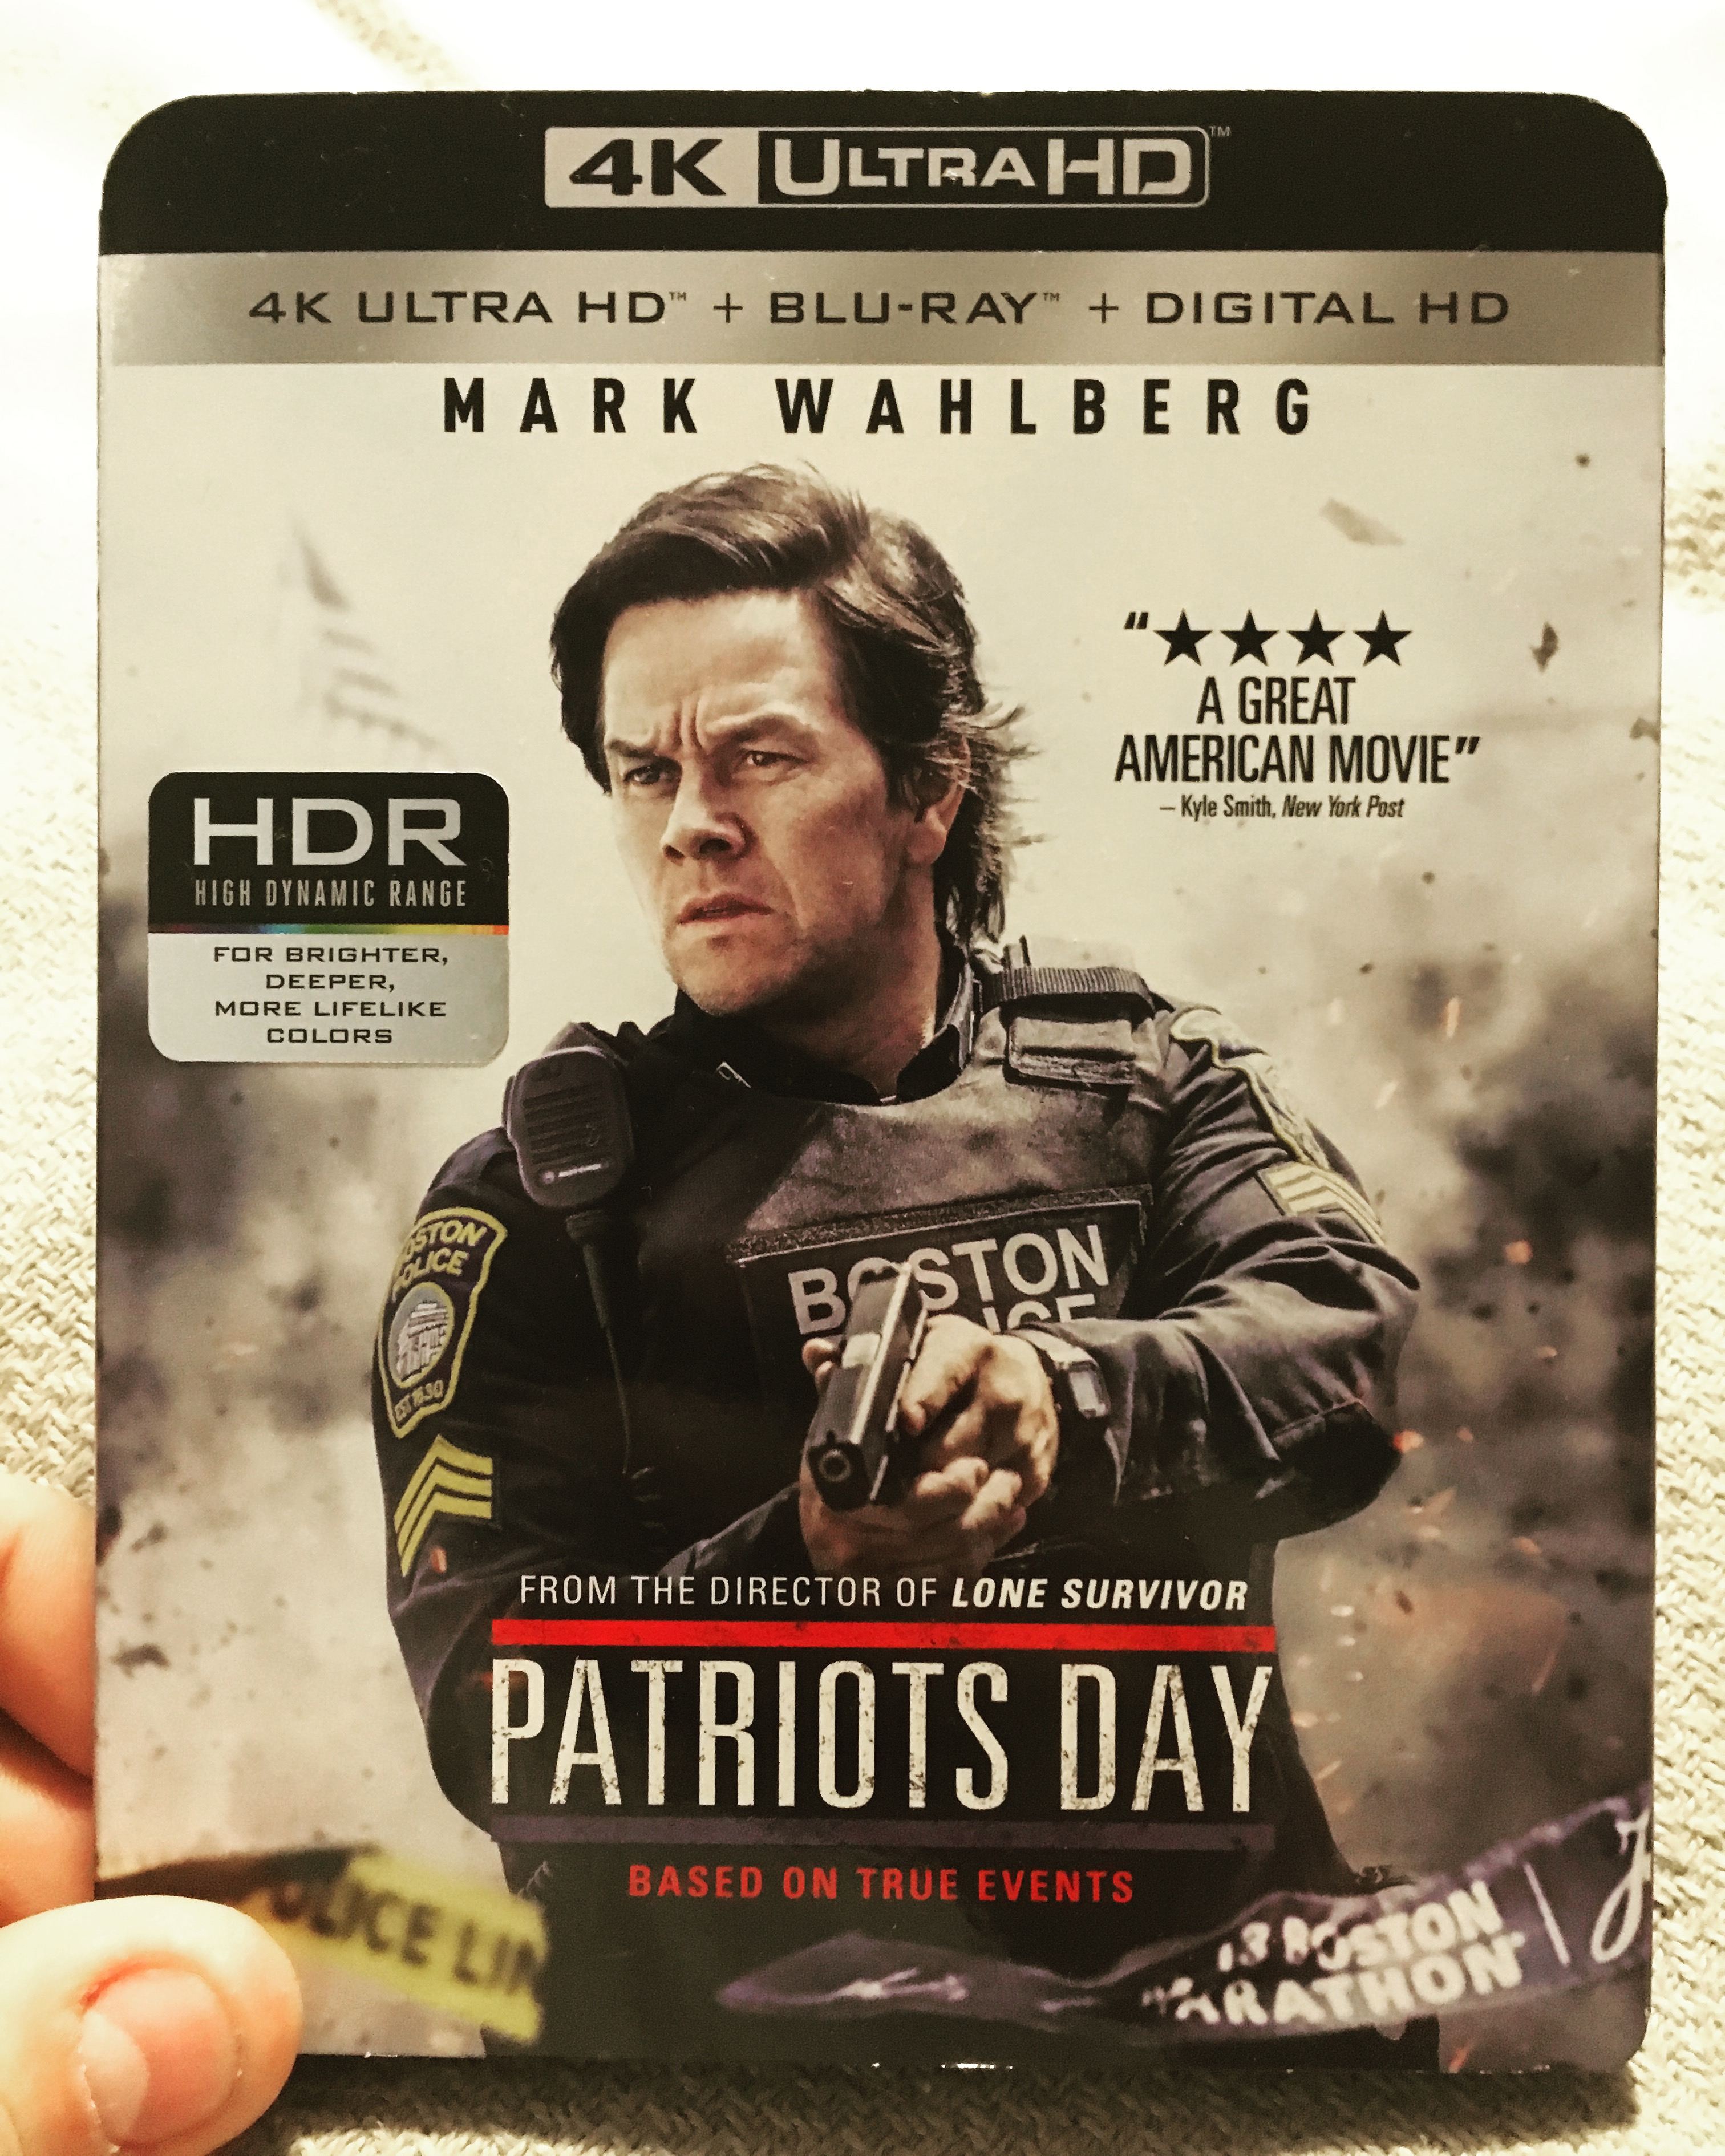 Patriot's Day - 4K UHD Blu-ray Review - ReDVDit